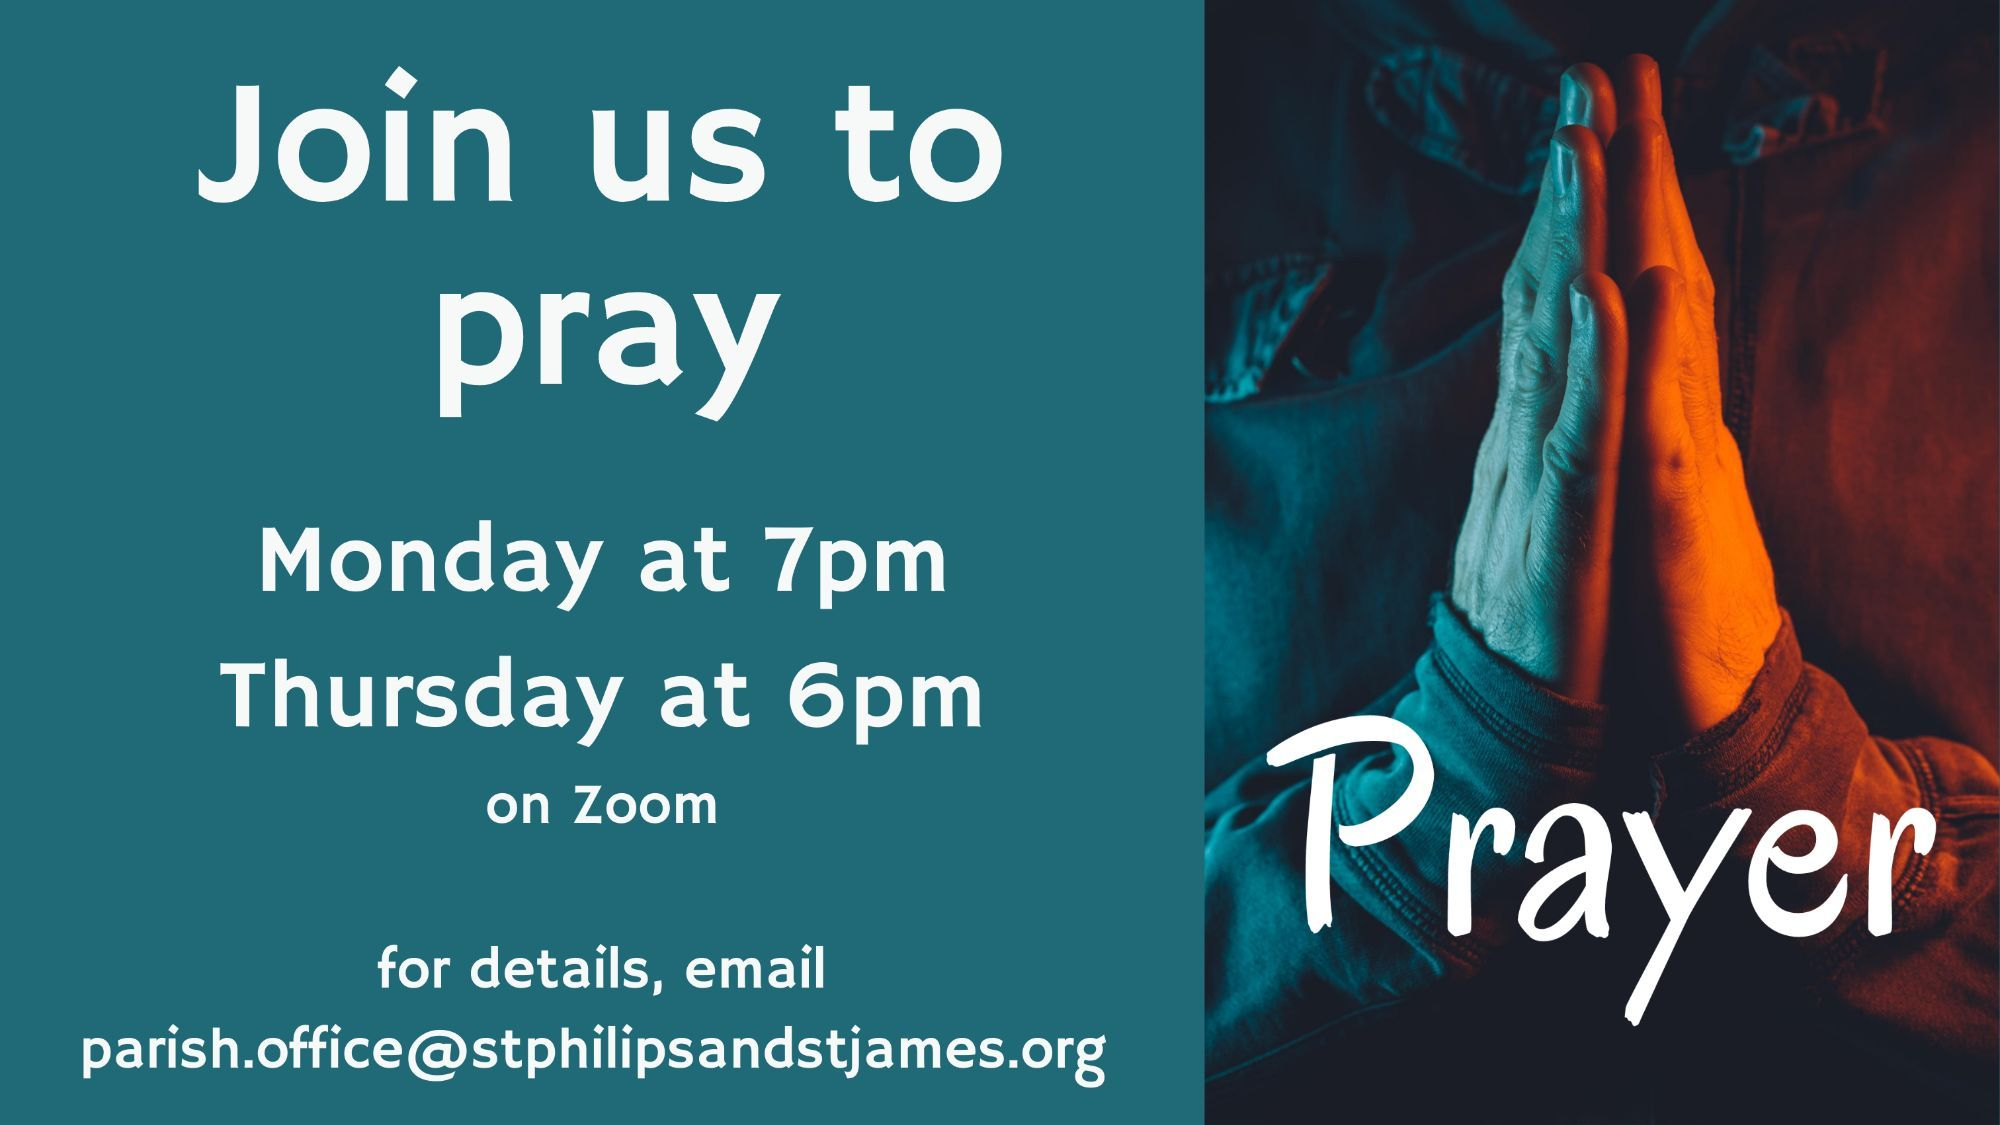 Join us to pray